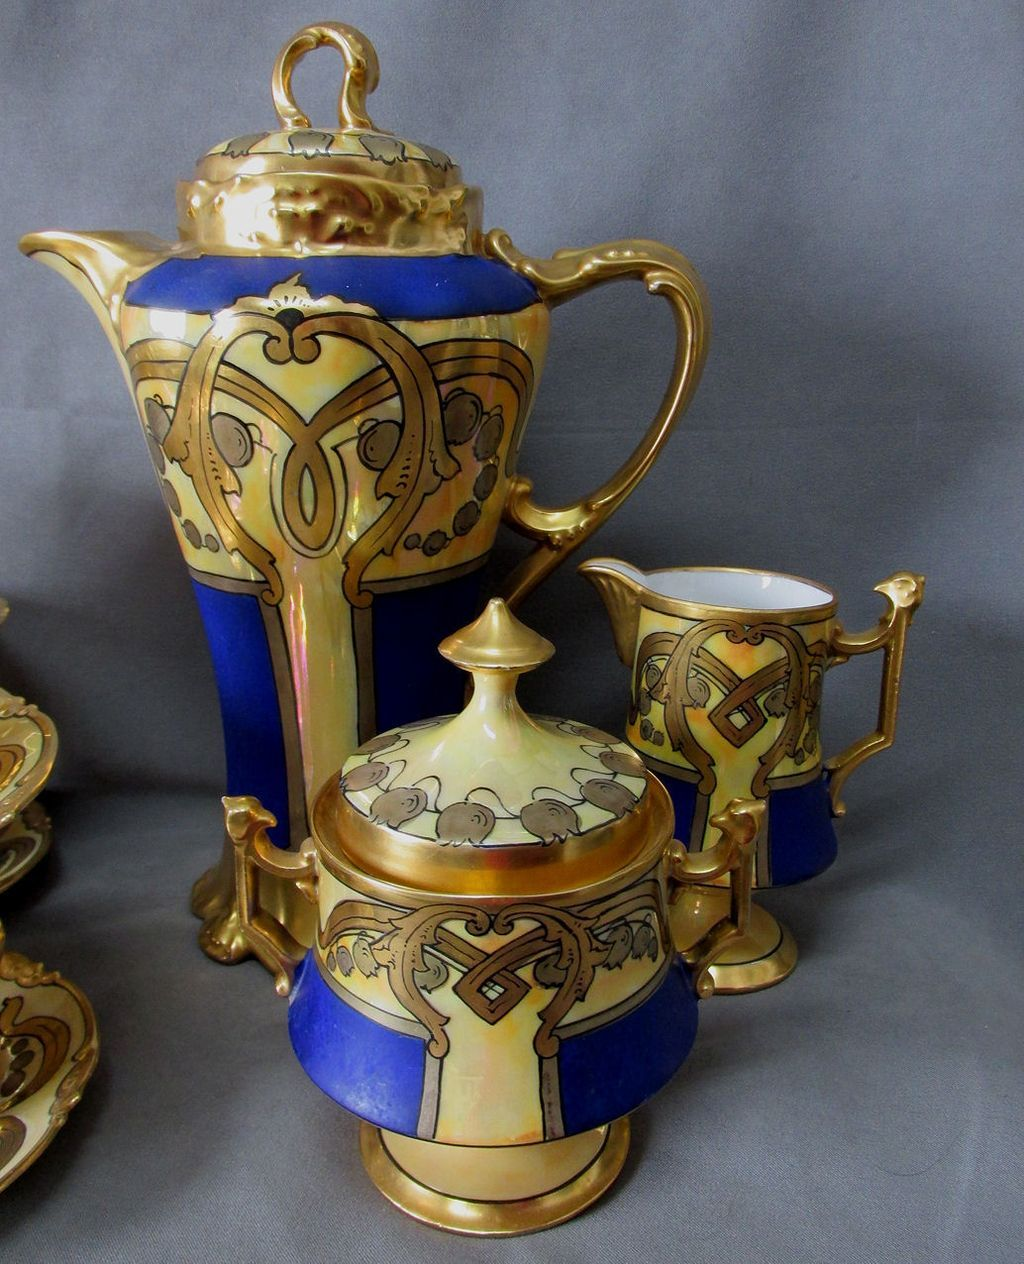 Hand Painted French Limoges Tea Set In Gilt Gold U0026 Cobalt Blue